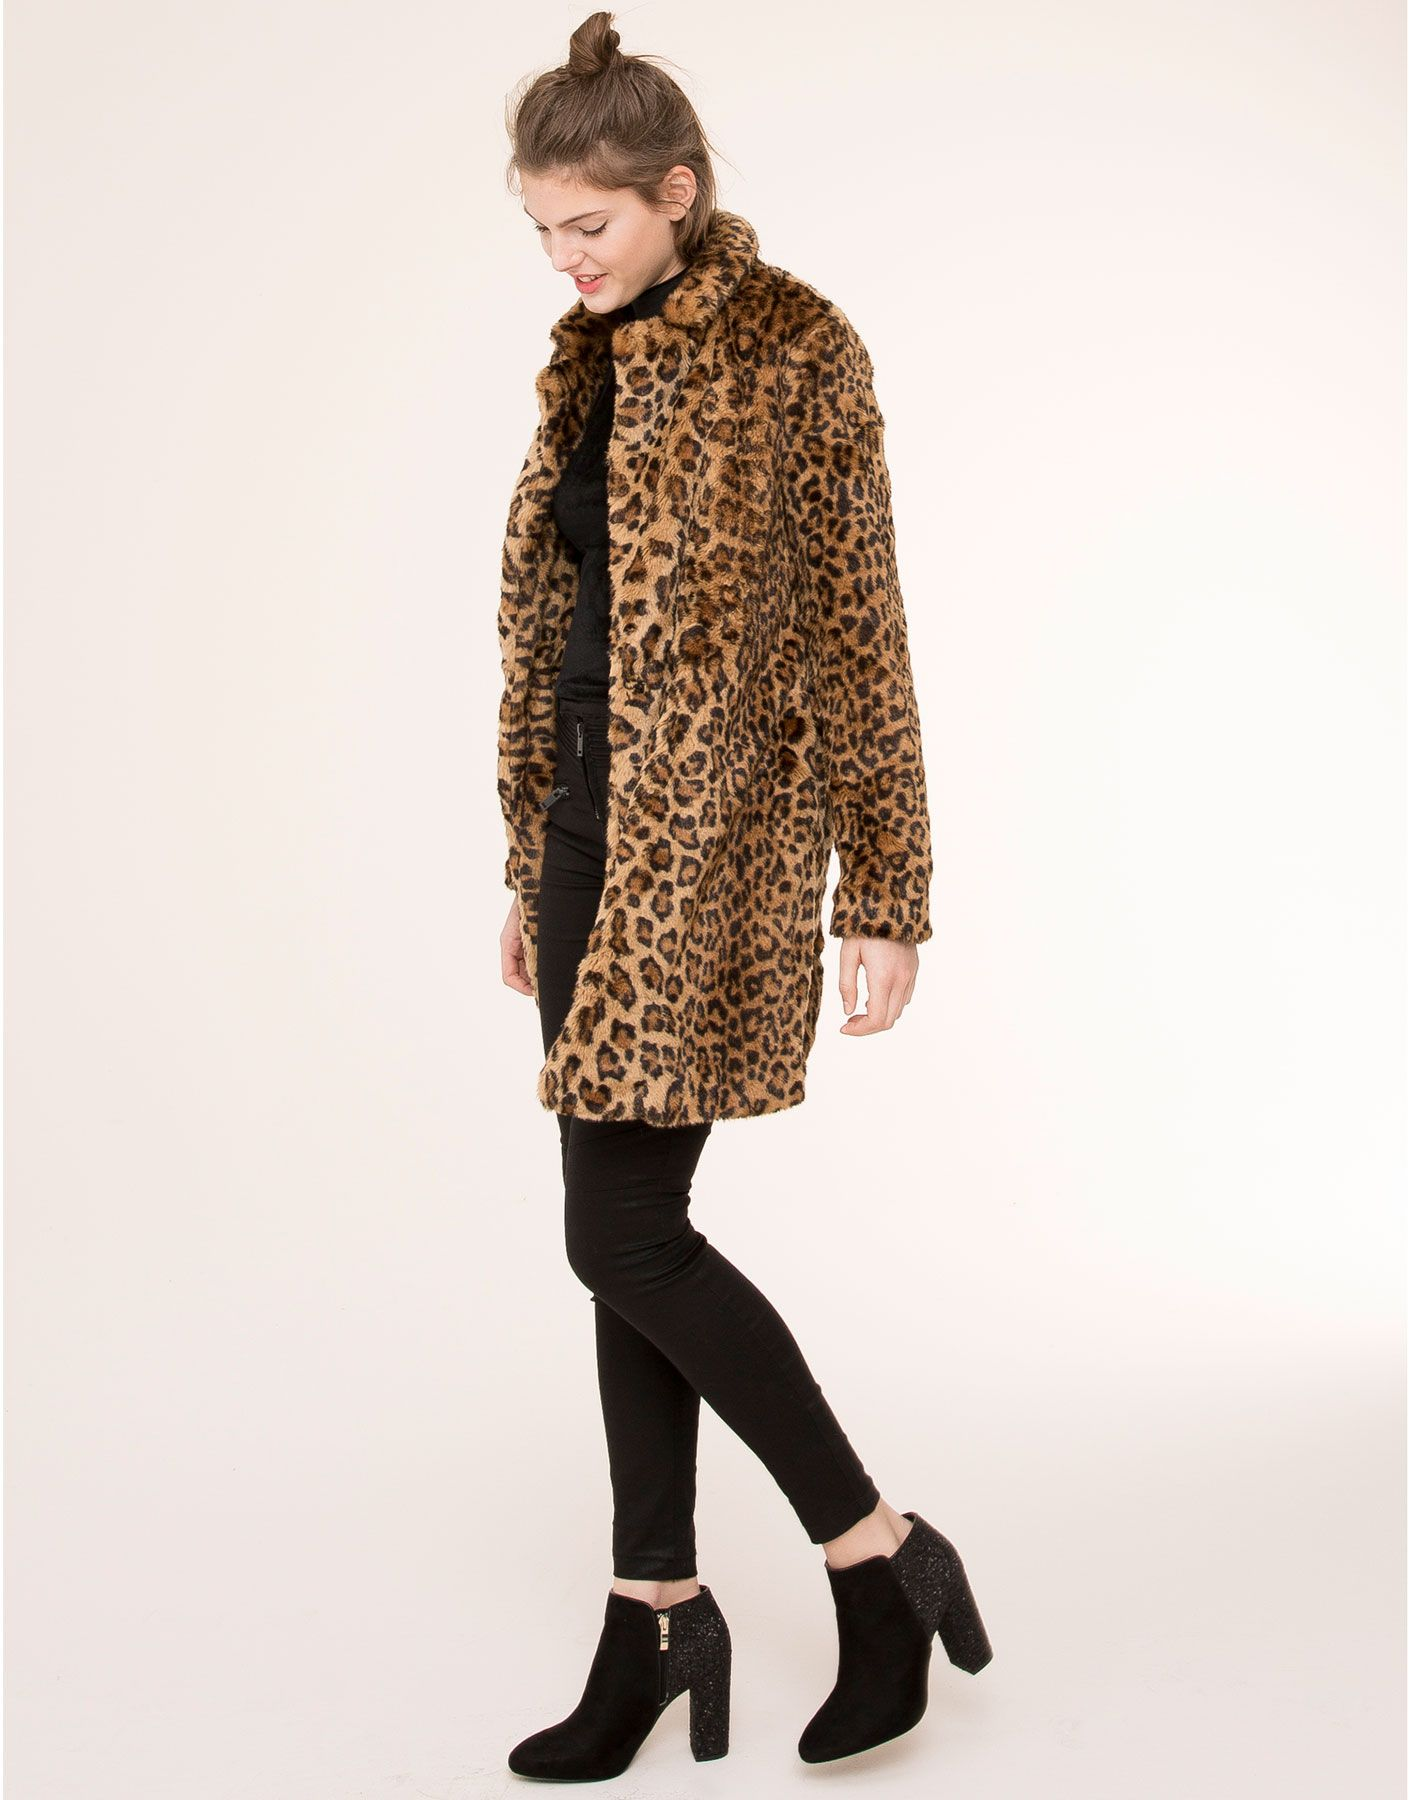 Explore Leopard Fur Coat, Pull & Bear, and more!